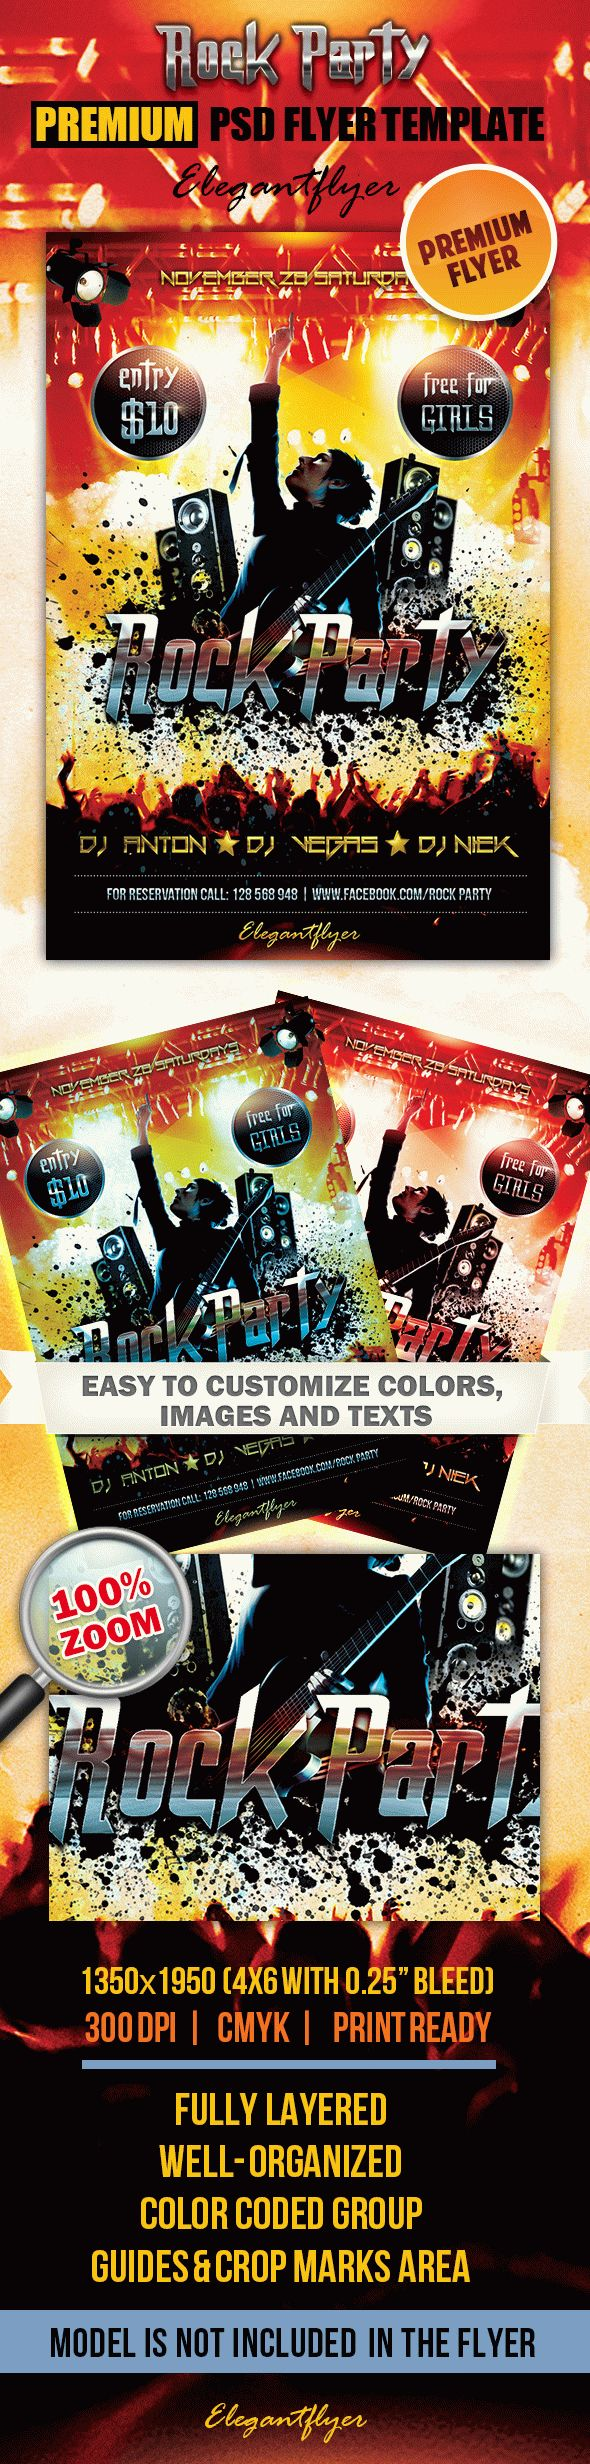 Rock Party – Premium Club flyer PSD Template